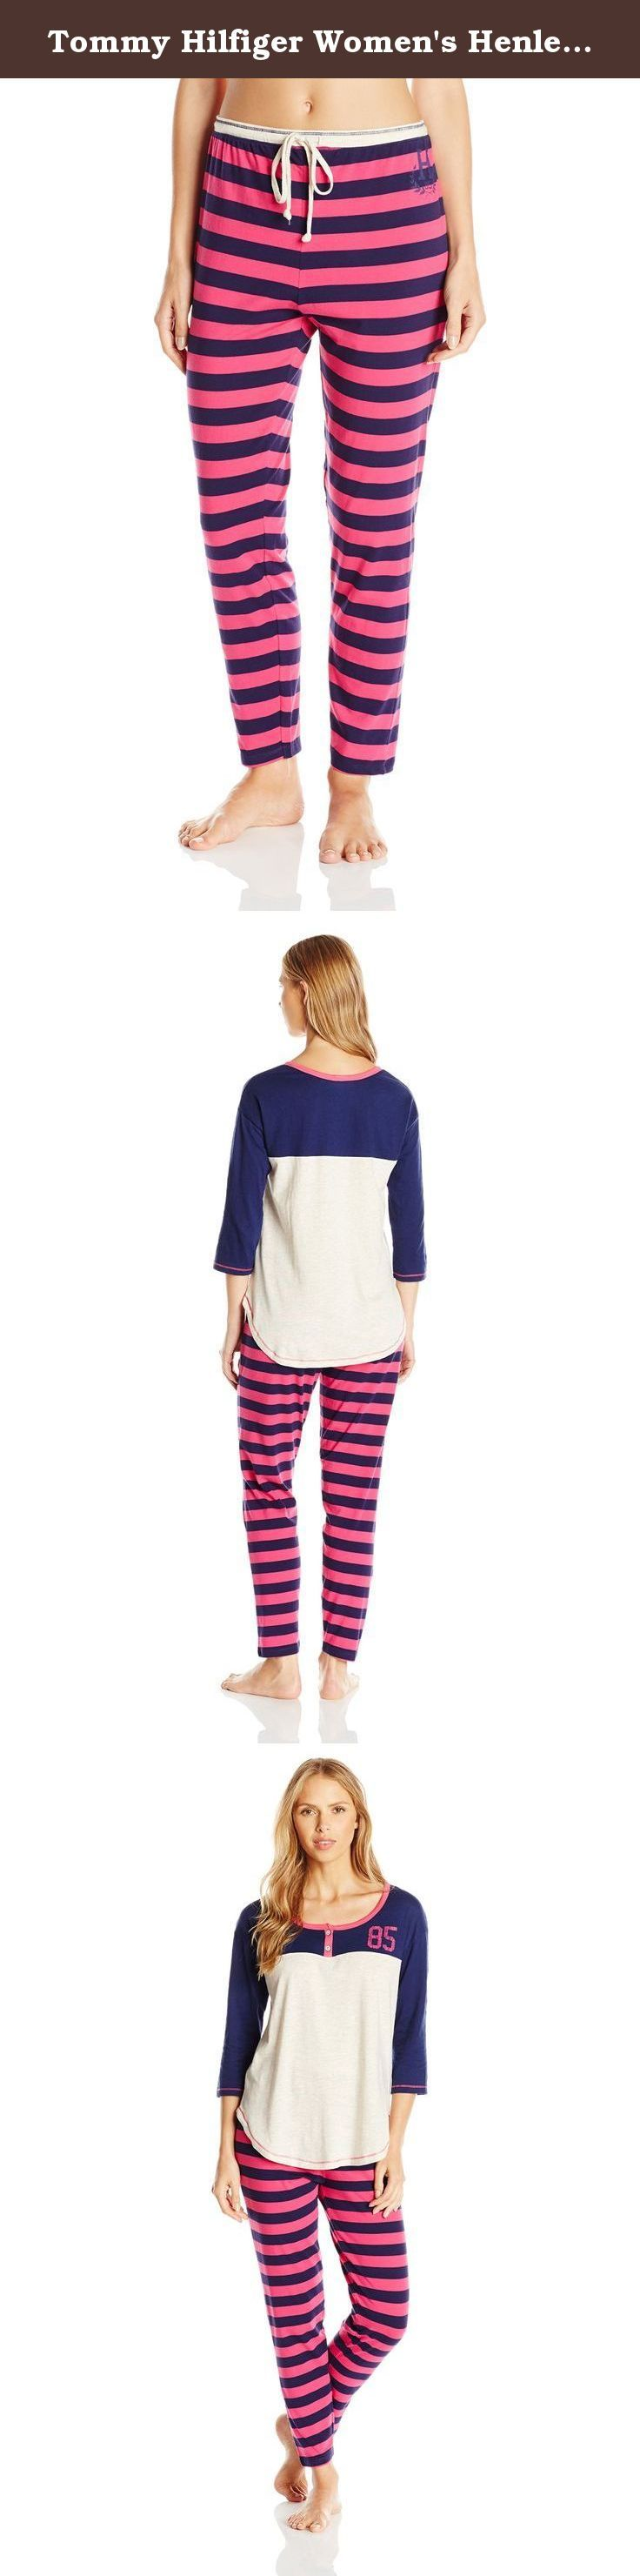 Tommy Hilfiger Women's Henley Slim Pant Pj Set, Oatmeal Heather/Mixed Berry Rugby, Medium. Sleep in style in our favorite sporty sleep set with our varsity henley top and varsity slim pant.